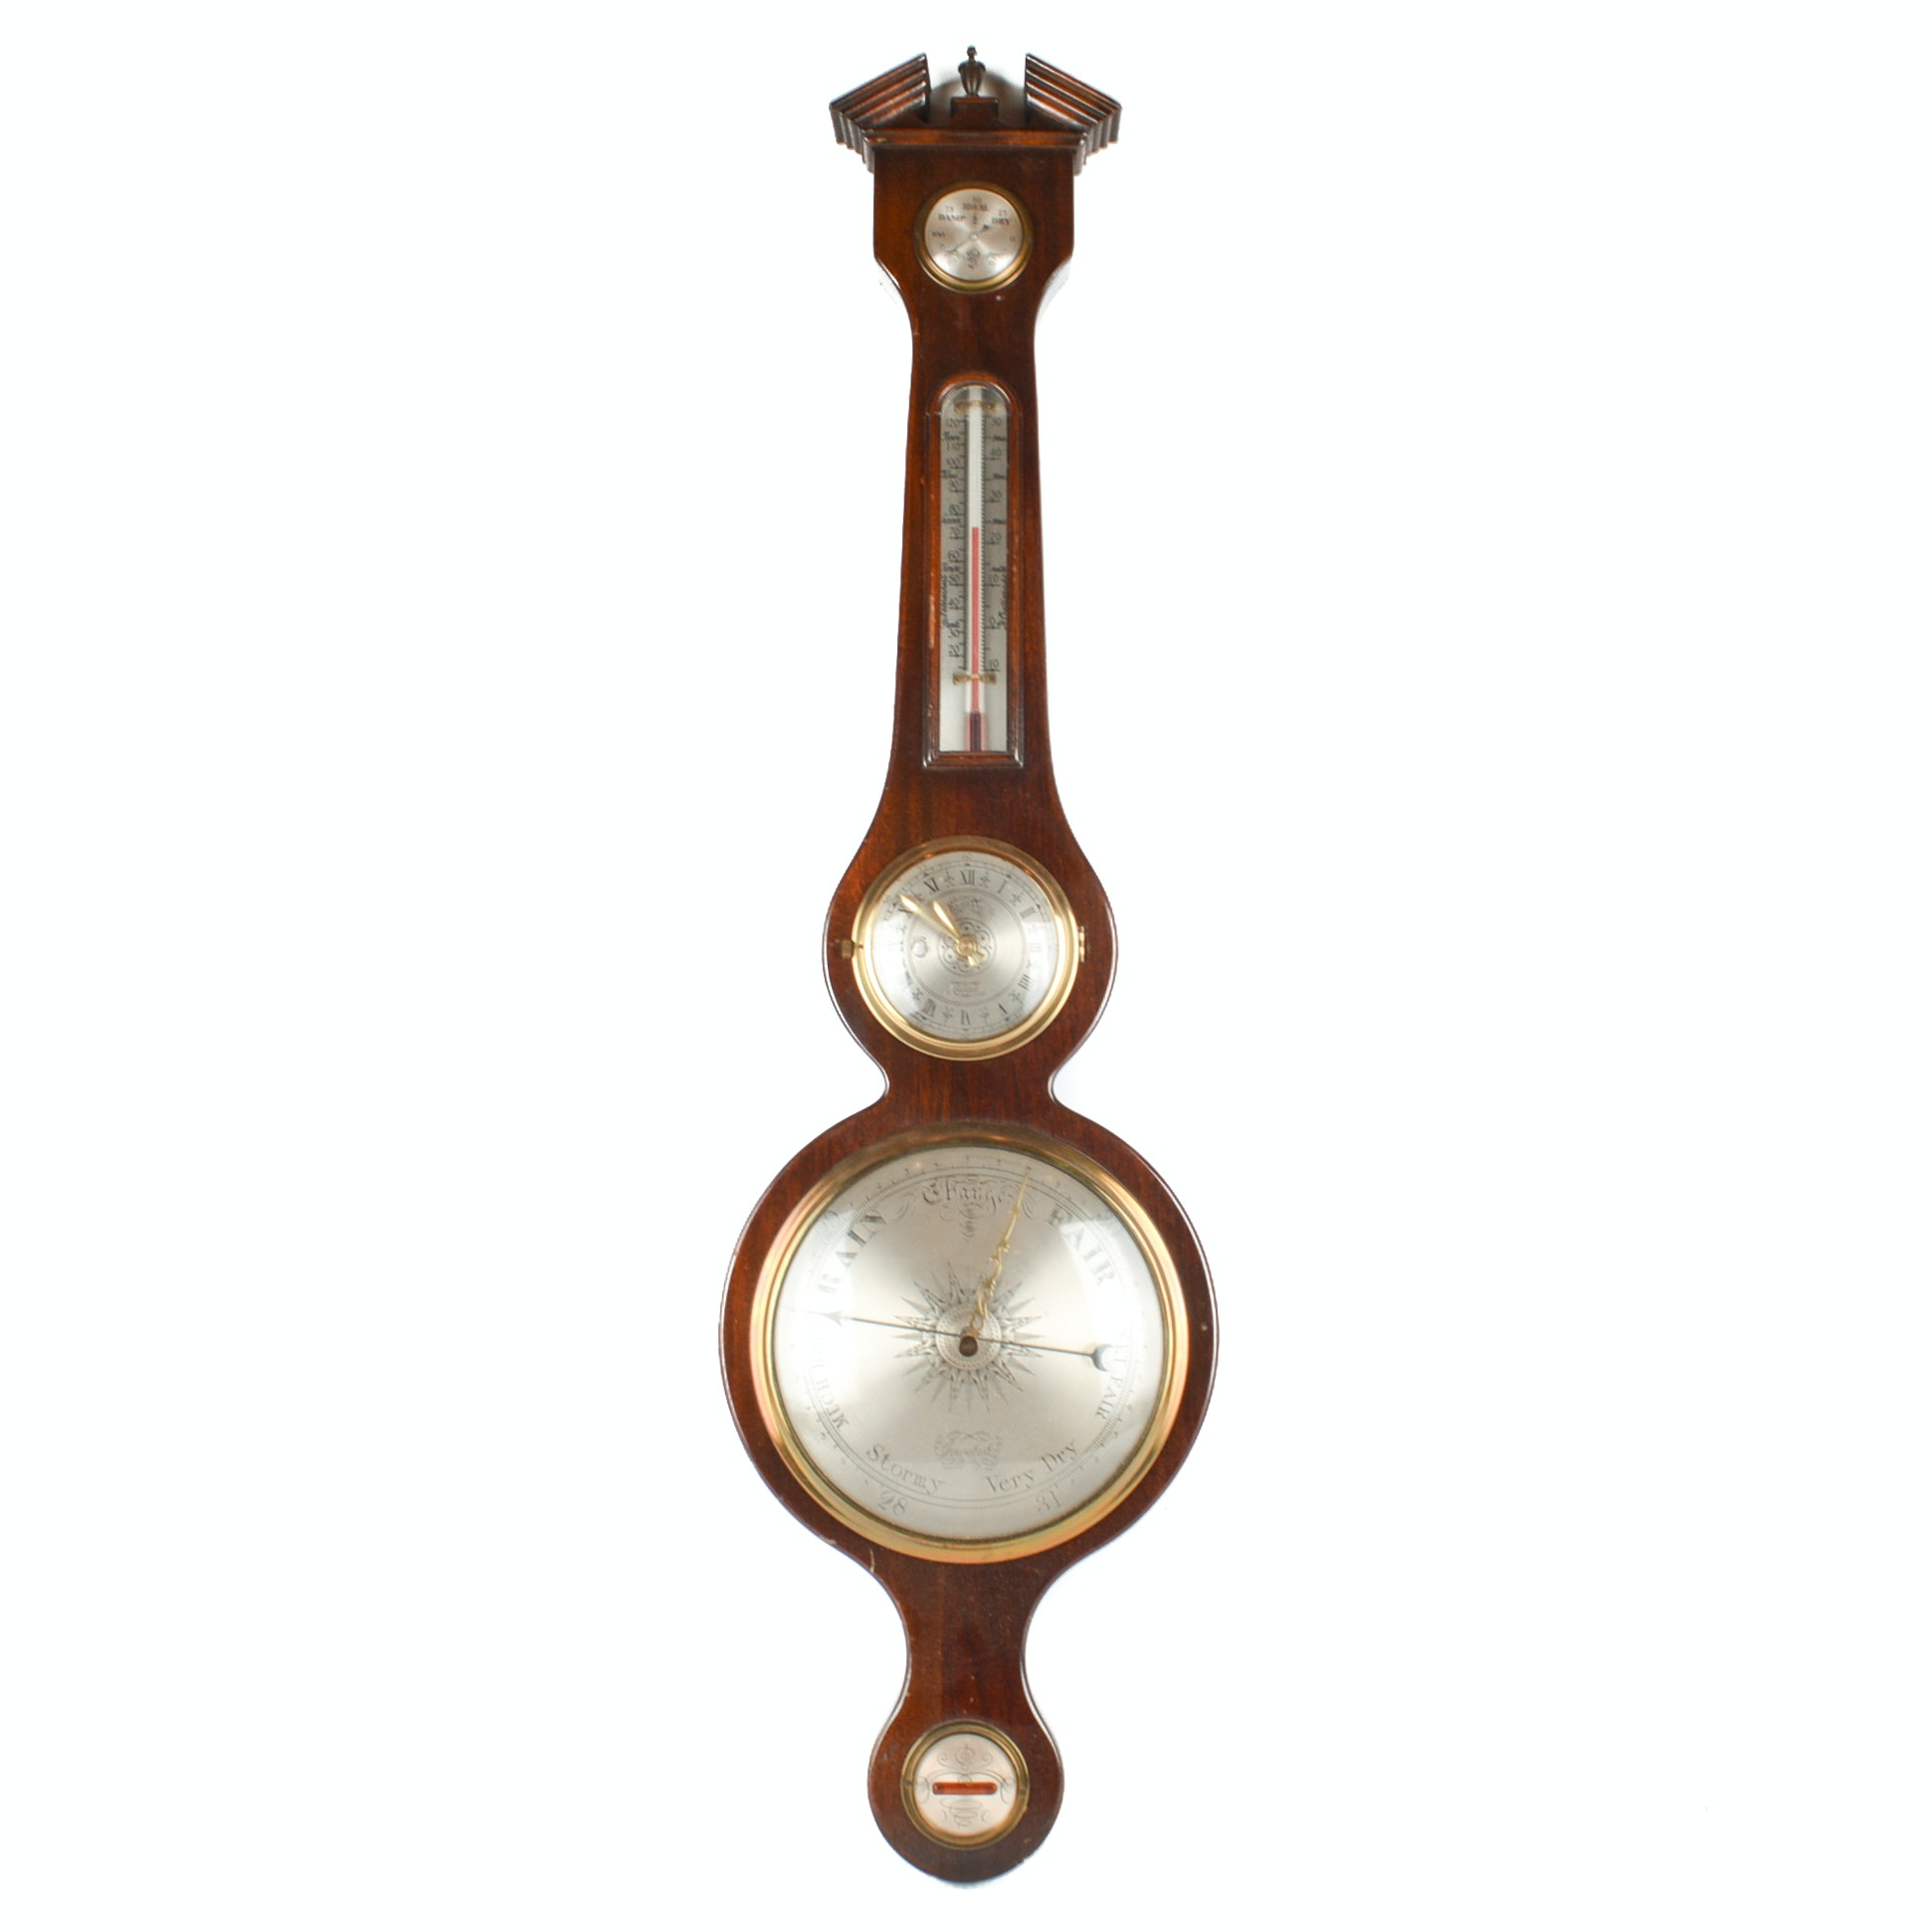 Peter F. Bollenbach Vintage Regency Style Mahogany Wall Barometer